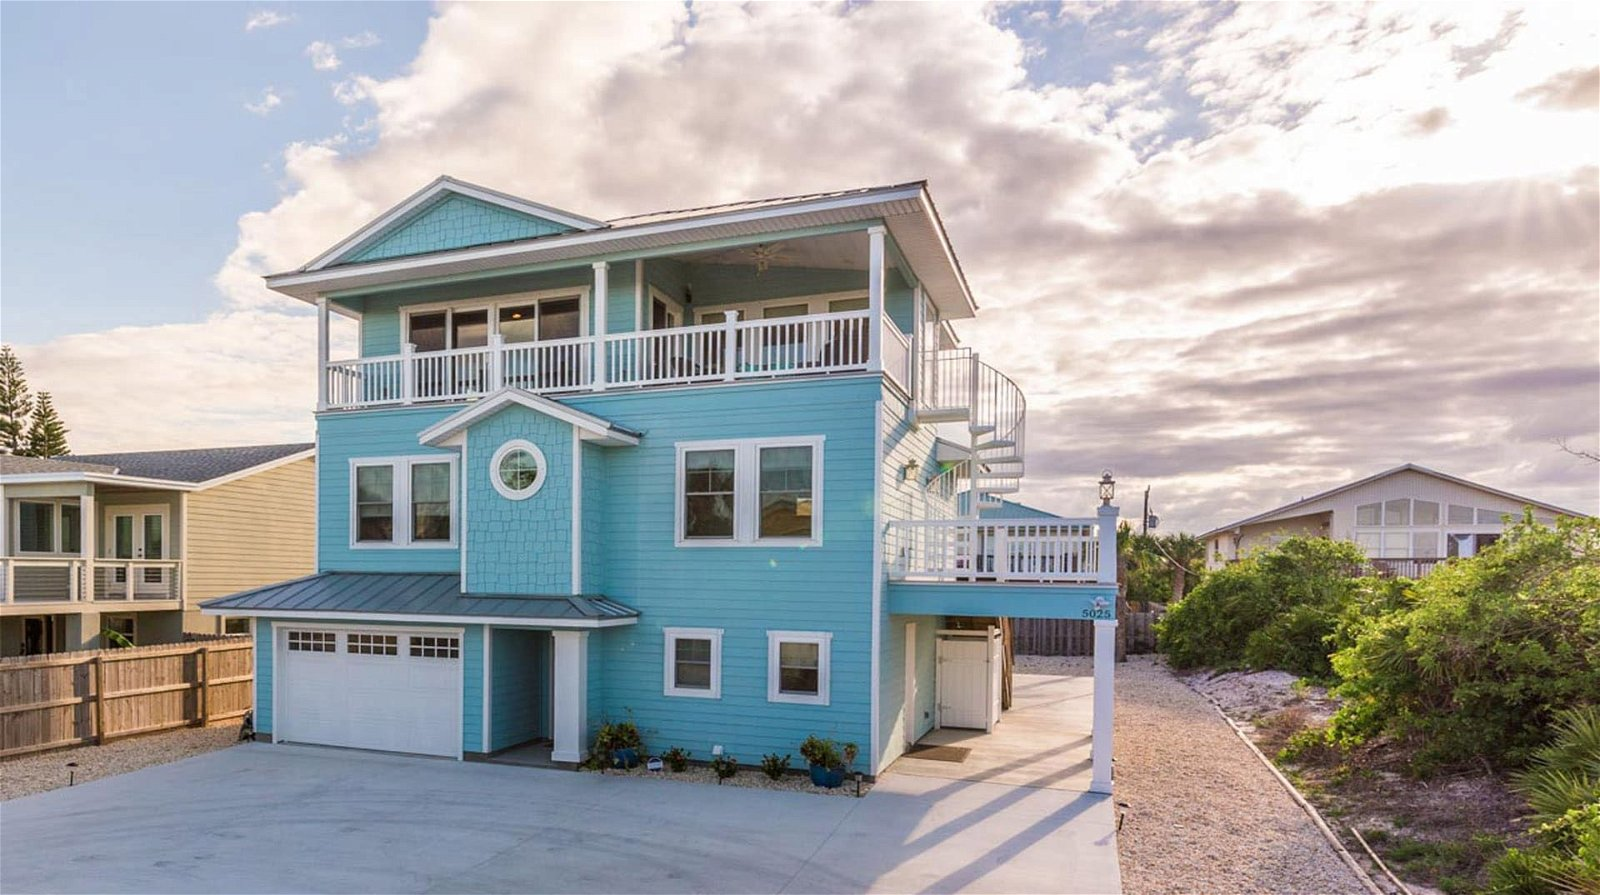 second home mortgage, second home loan, second home, key west second home